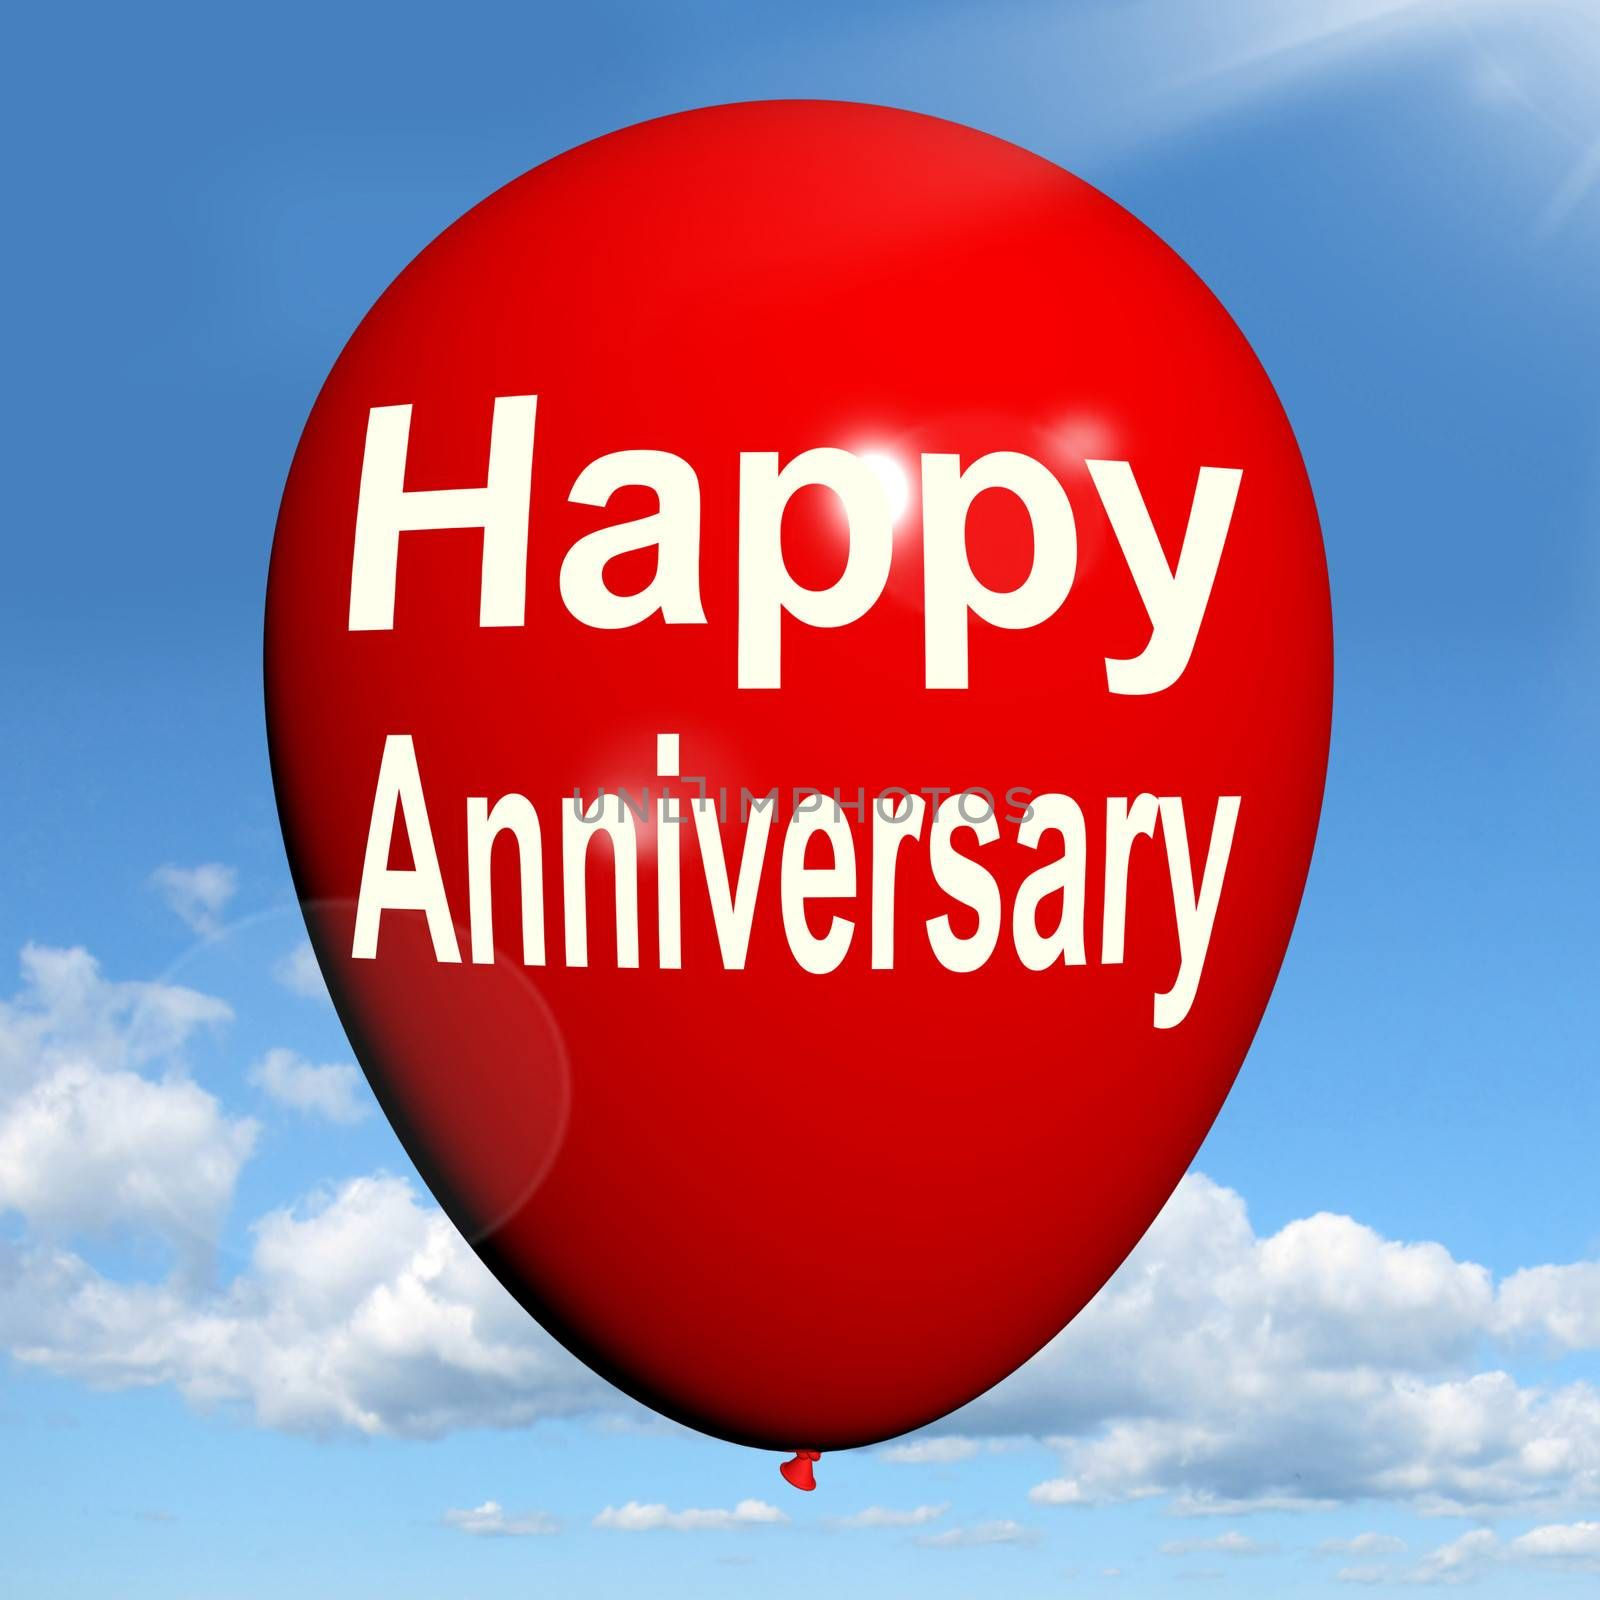 Happy Anniversary Balloon Showing Cheerful Festivities and Parties